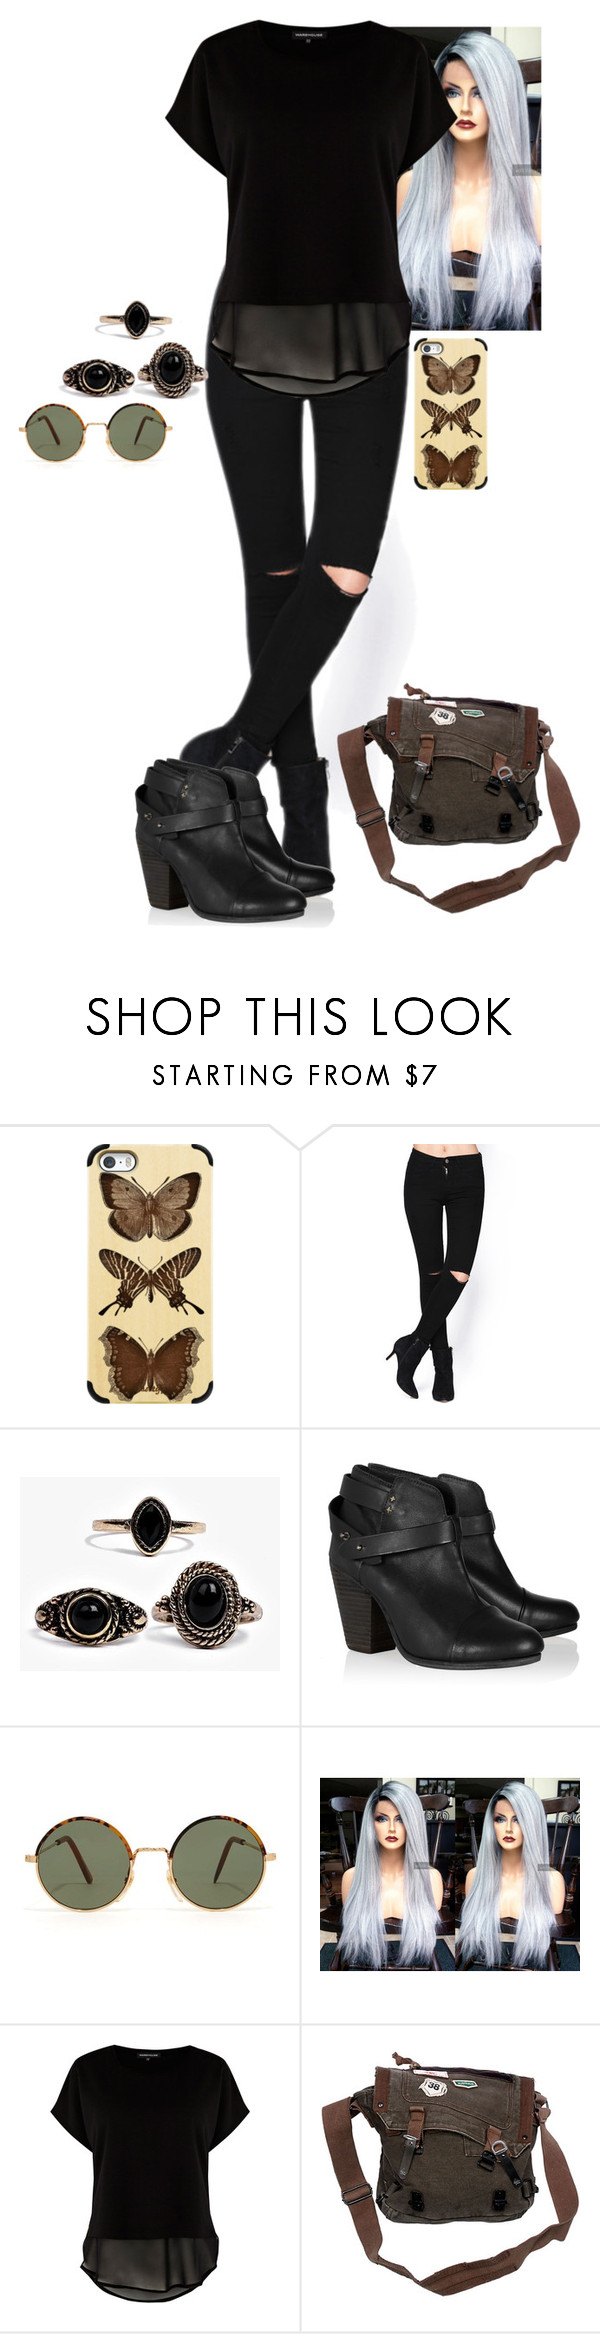 """""""Untitled #342"""" by ineshamblett ❤ liked on Polyvore featuring Casetify, Boohoo…"""